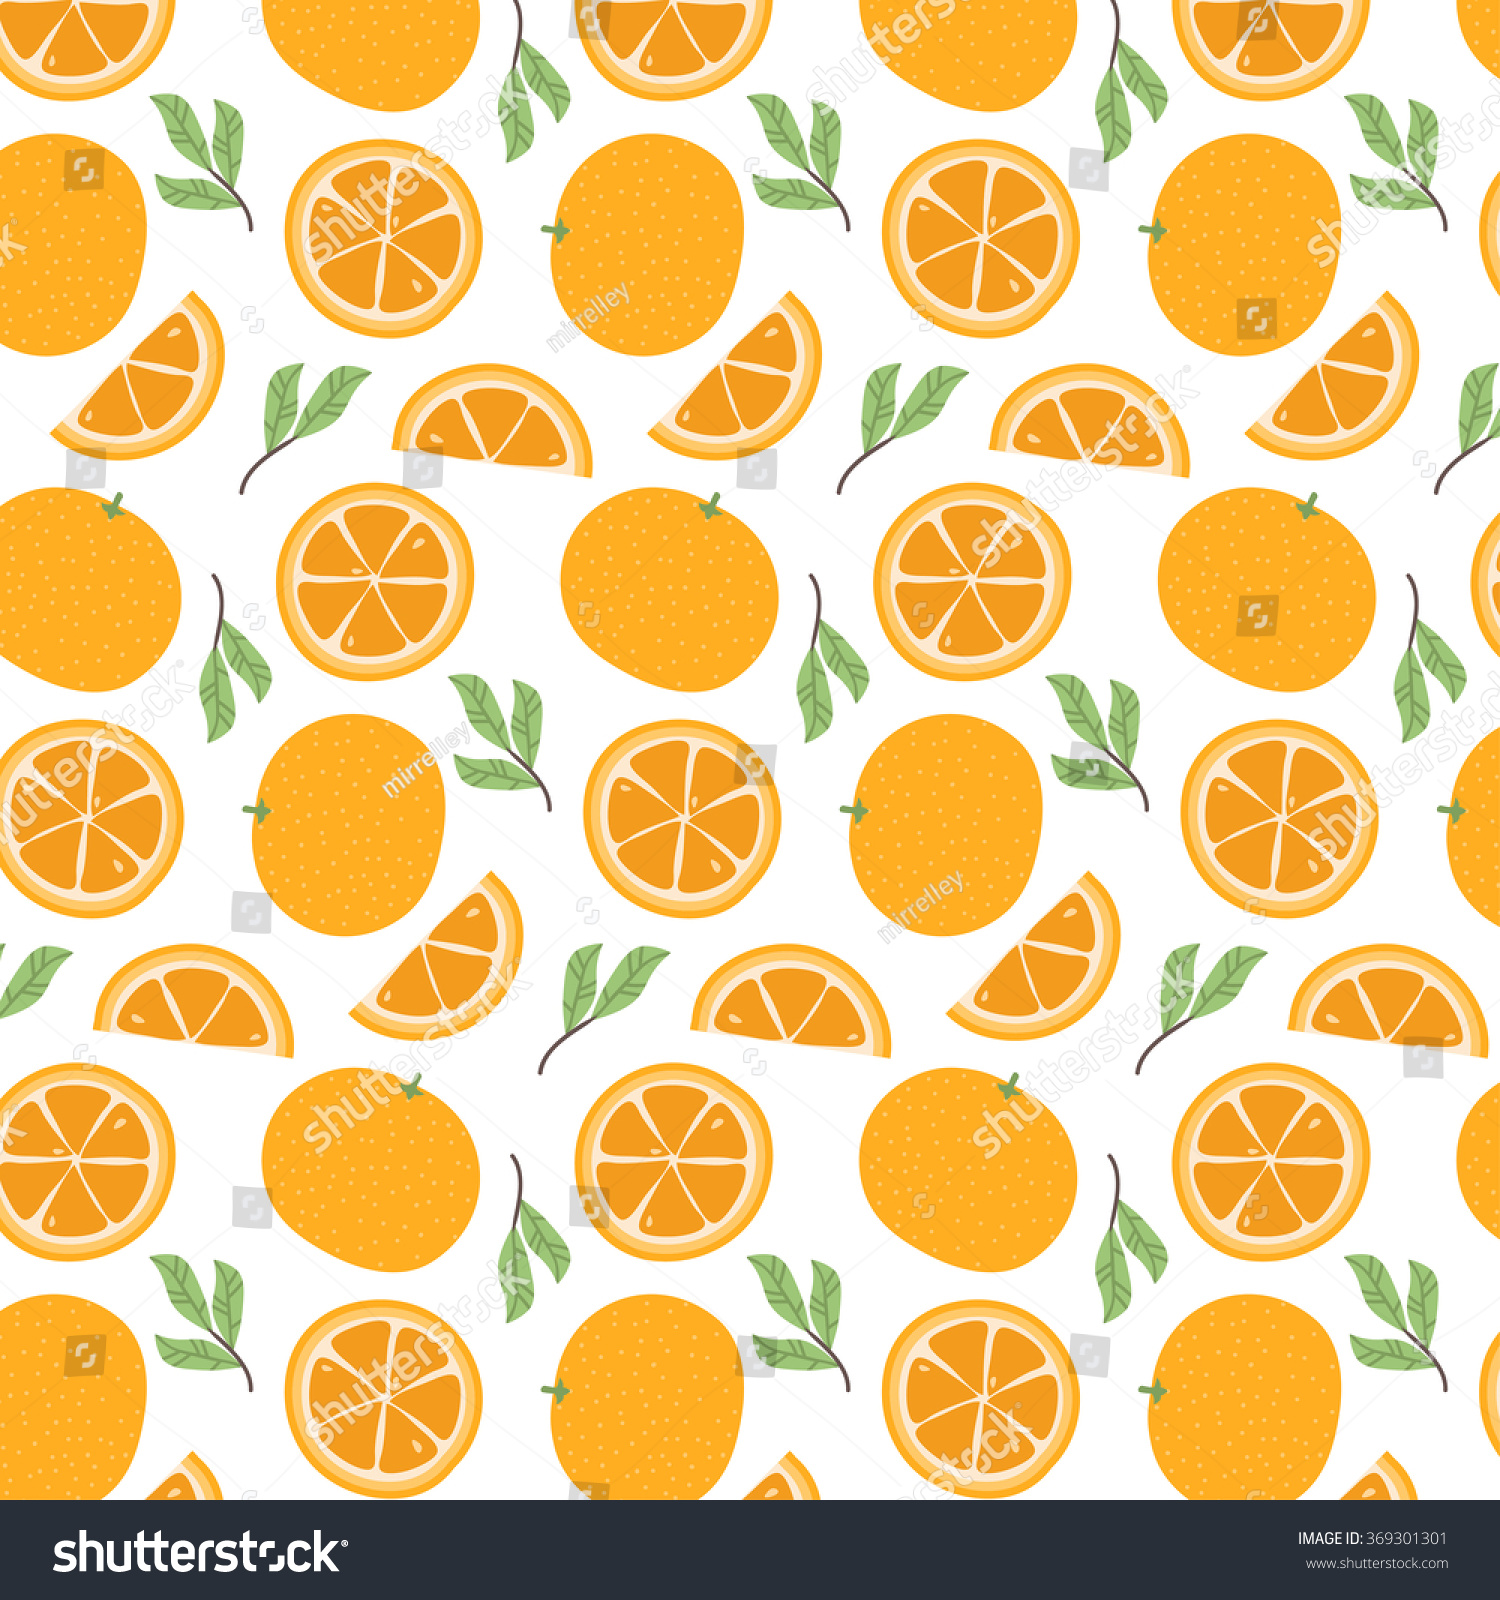 Lilly Pulitzer Wallpaper Fall Cute Pattern Cartoon Oranges Oranges Slices Vectores En